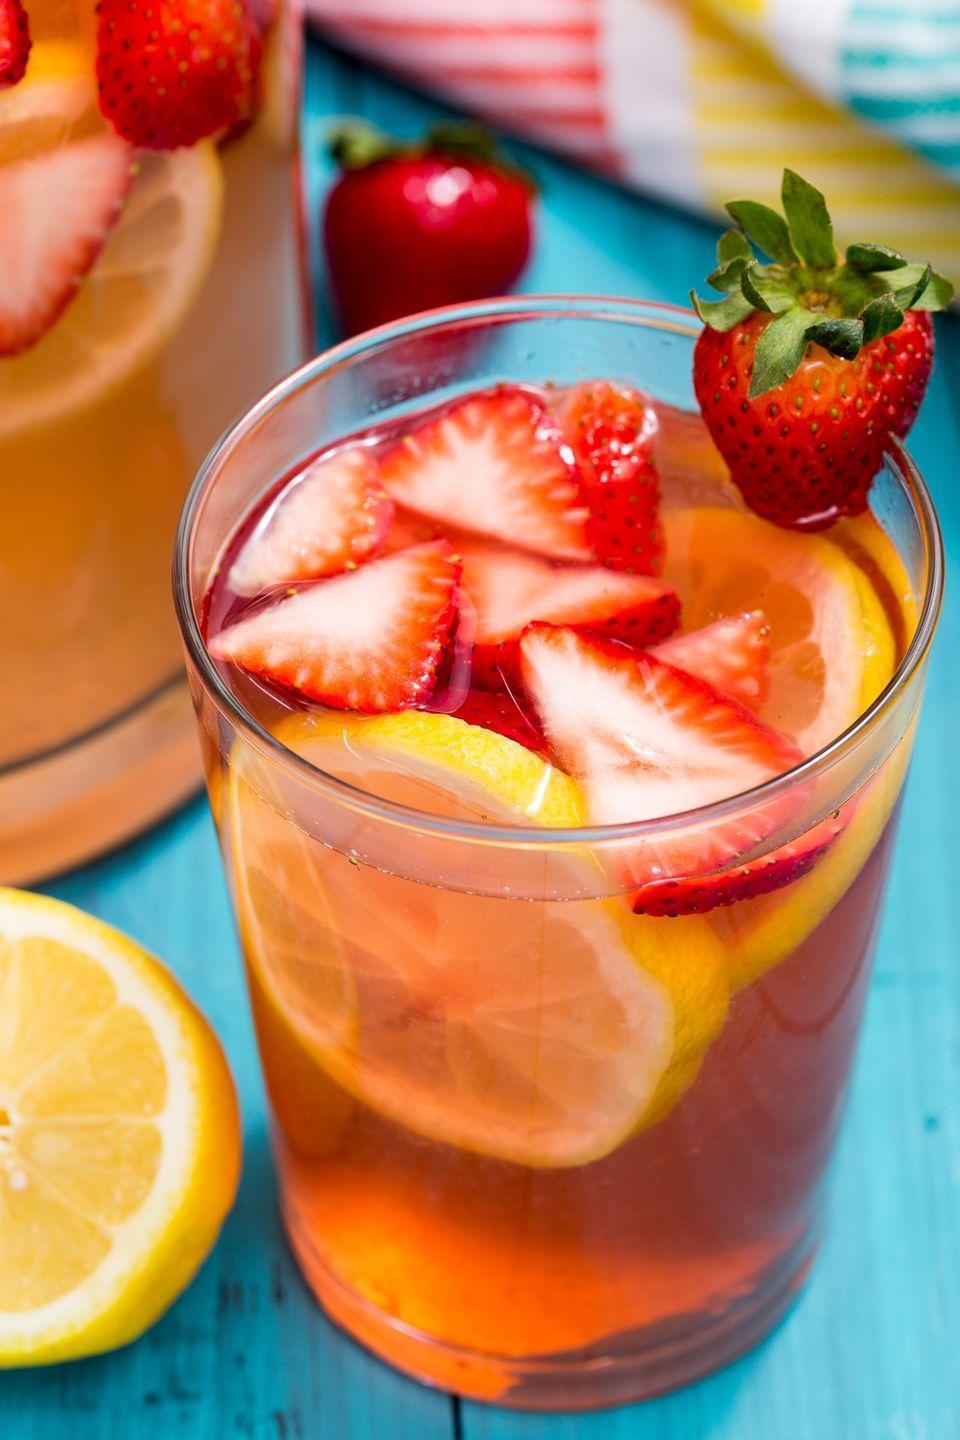 "<p>Gotta stay hydrated, y'all.</p><p>Get the recipe from <a href=""https://www.delish.com/cooking/recipe-ideas/recipes/a47212/spiked-strawberry-lemonade-recipe/"" rel=""nofollow noopener"" target=""_blank"" data-ylk=""slk:Delish"" class=""link rapid-noclick-resp"">Delish</a>.</p>"